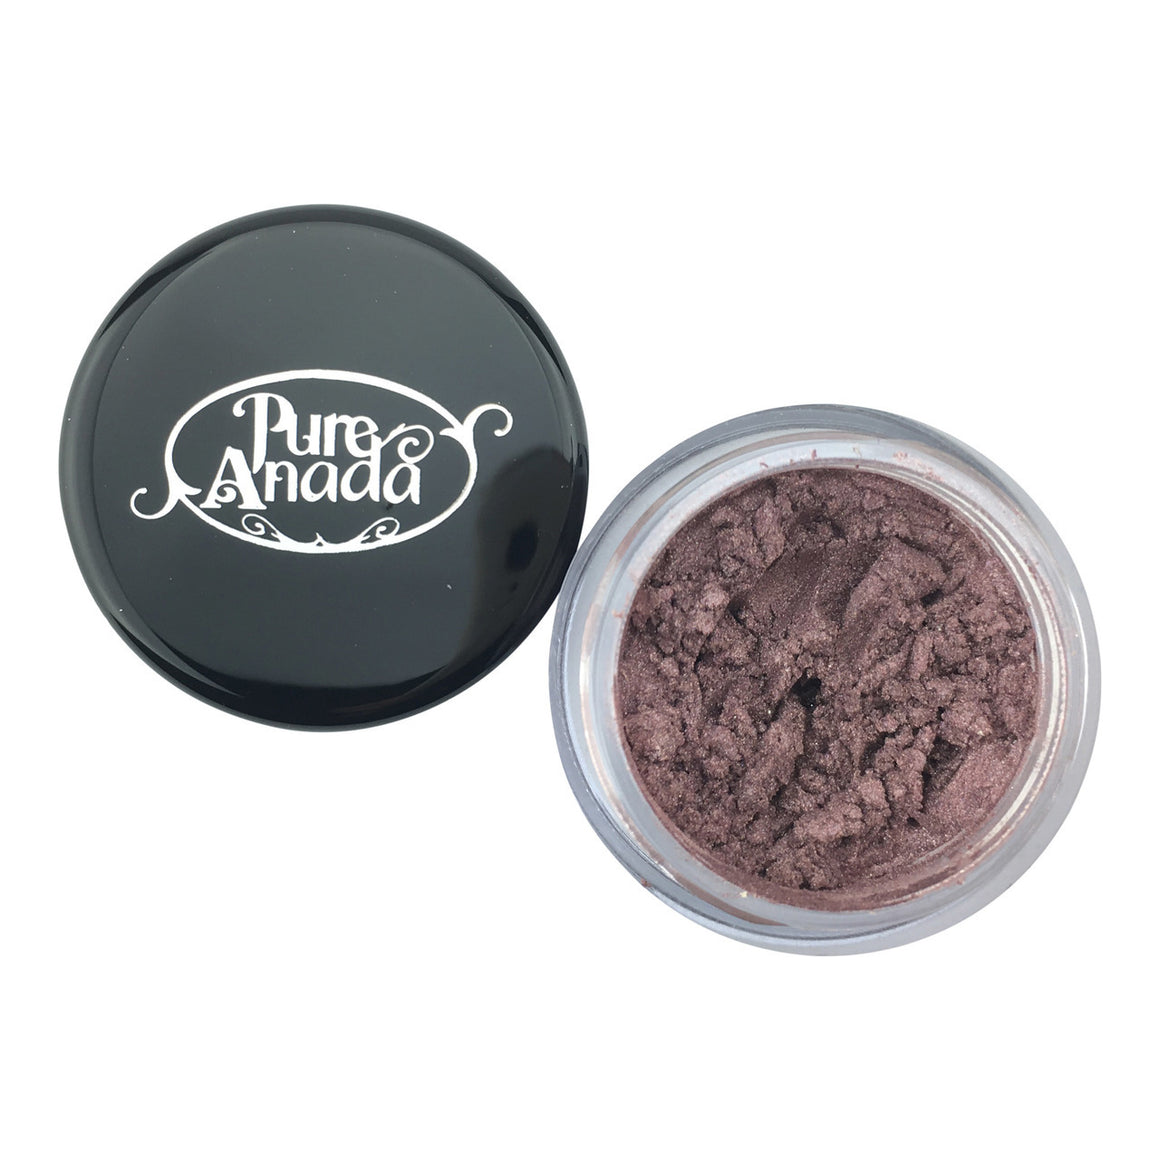 Wisteria - Luminous Eye Loose Shadow 1g-PureAnada-Live in the Light